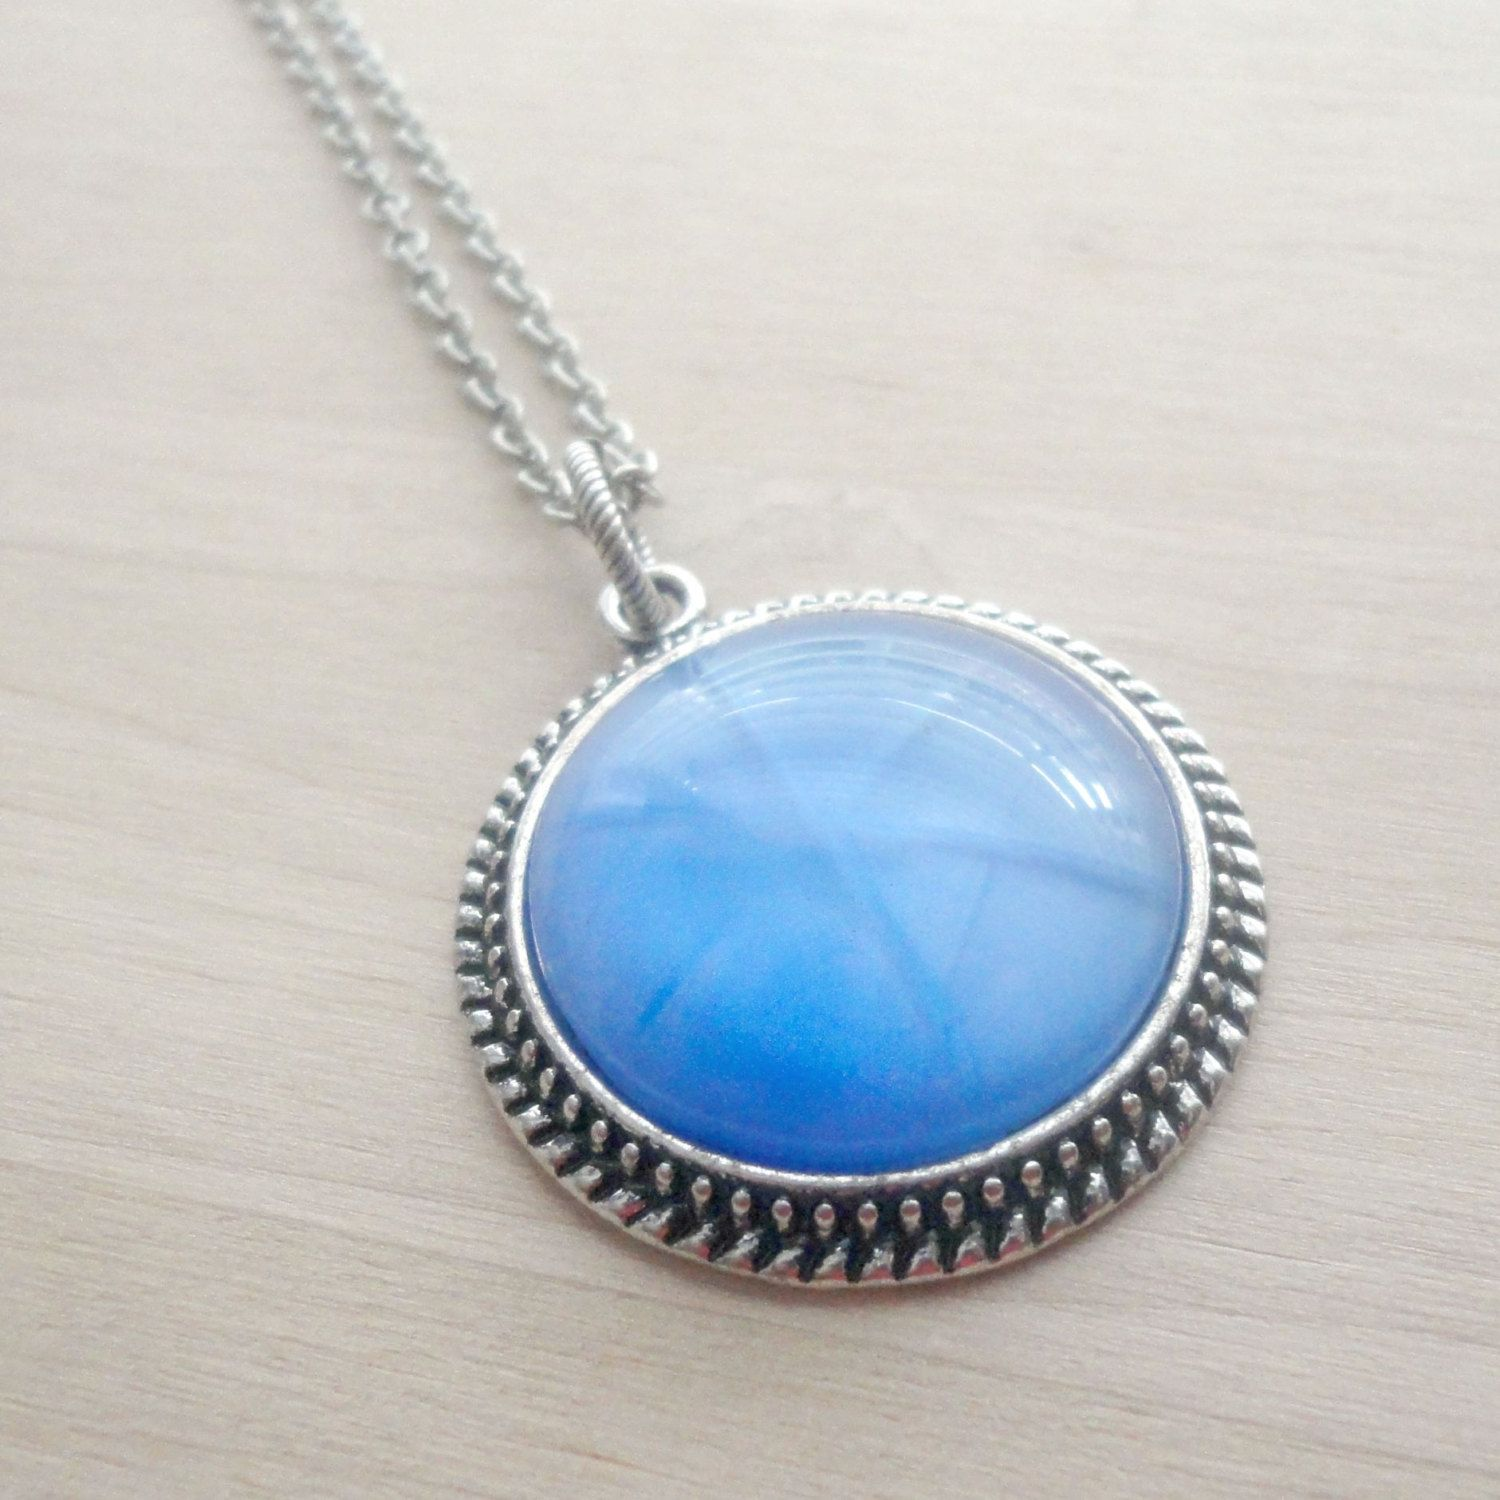 stone necklace moon gem pendant moonstone sterling round bezel ready silver gemstone for with bail